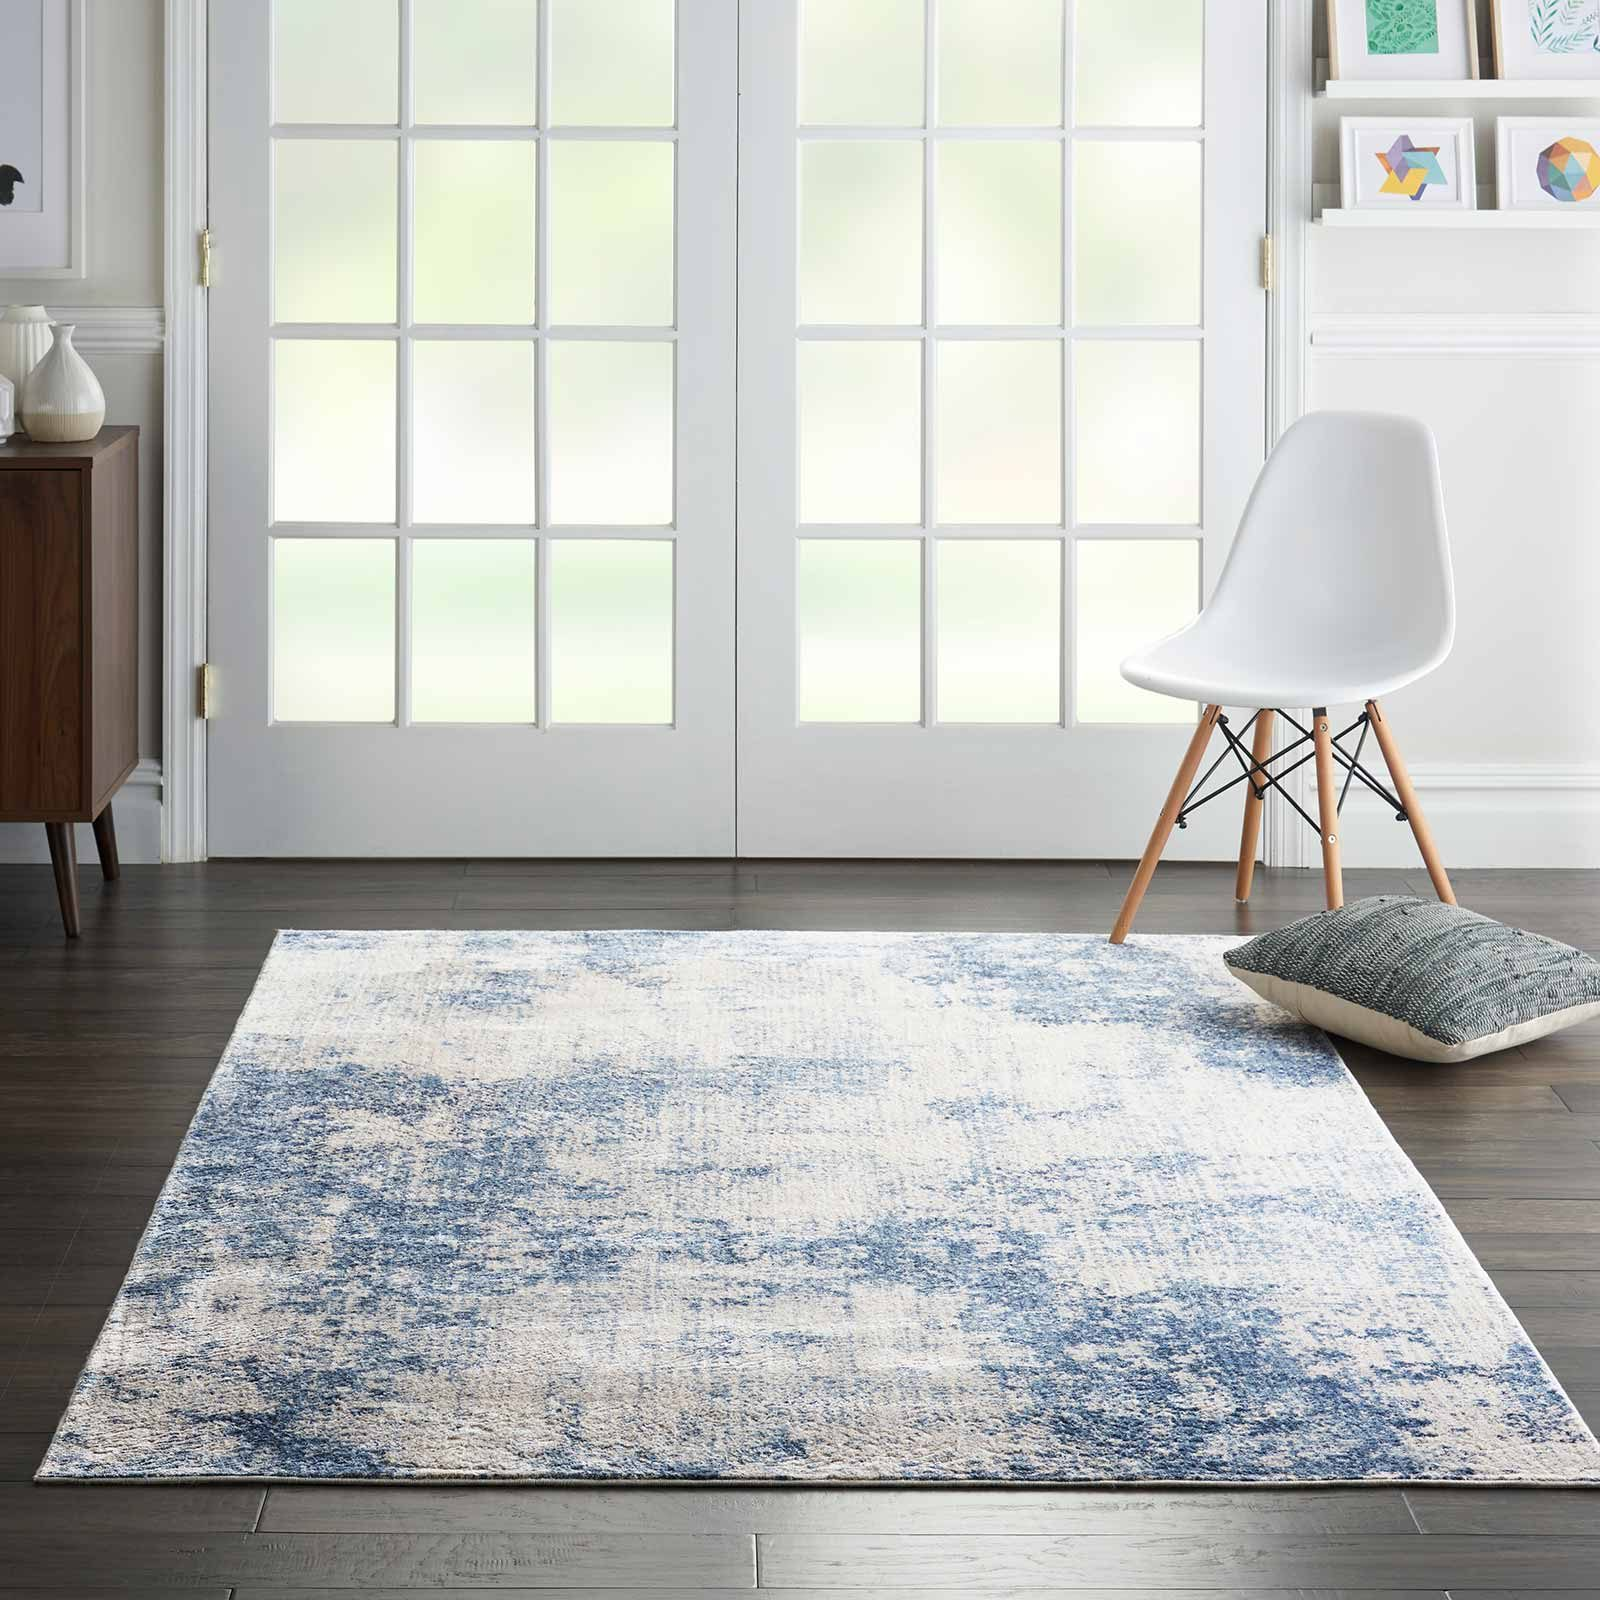 Andessi tapijt Silky Textures SLY01 IVORY BLUE 4x6 099446709677 interior 1 C